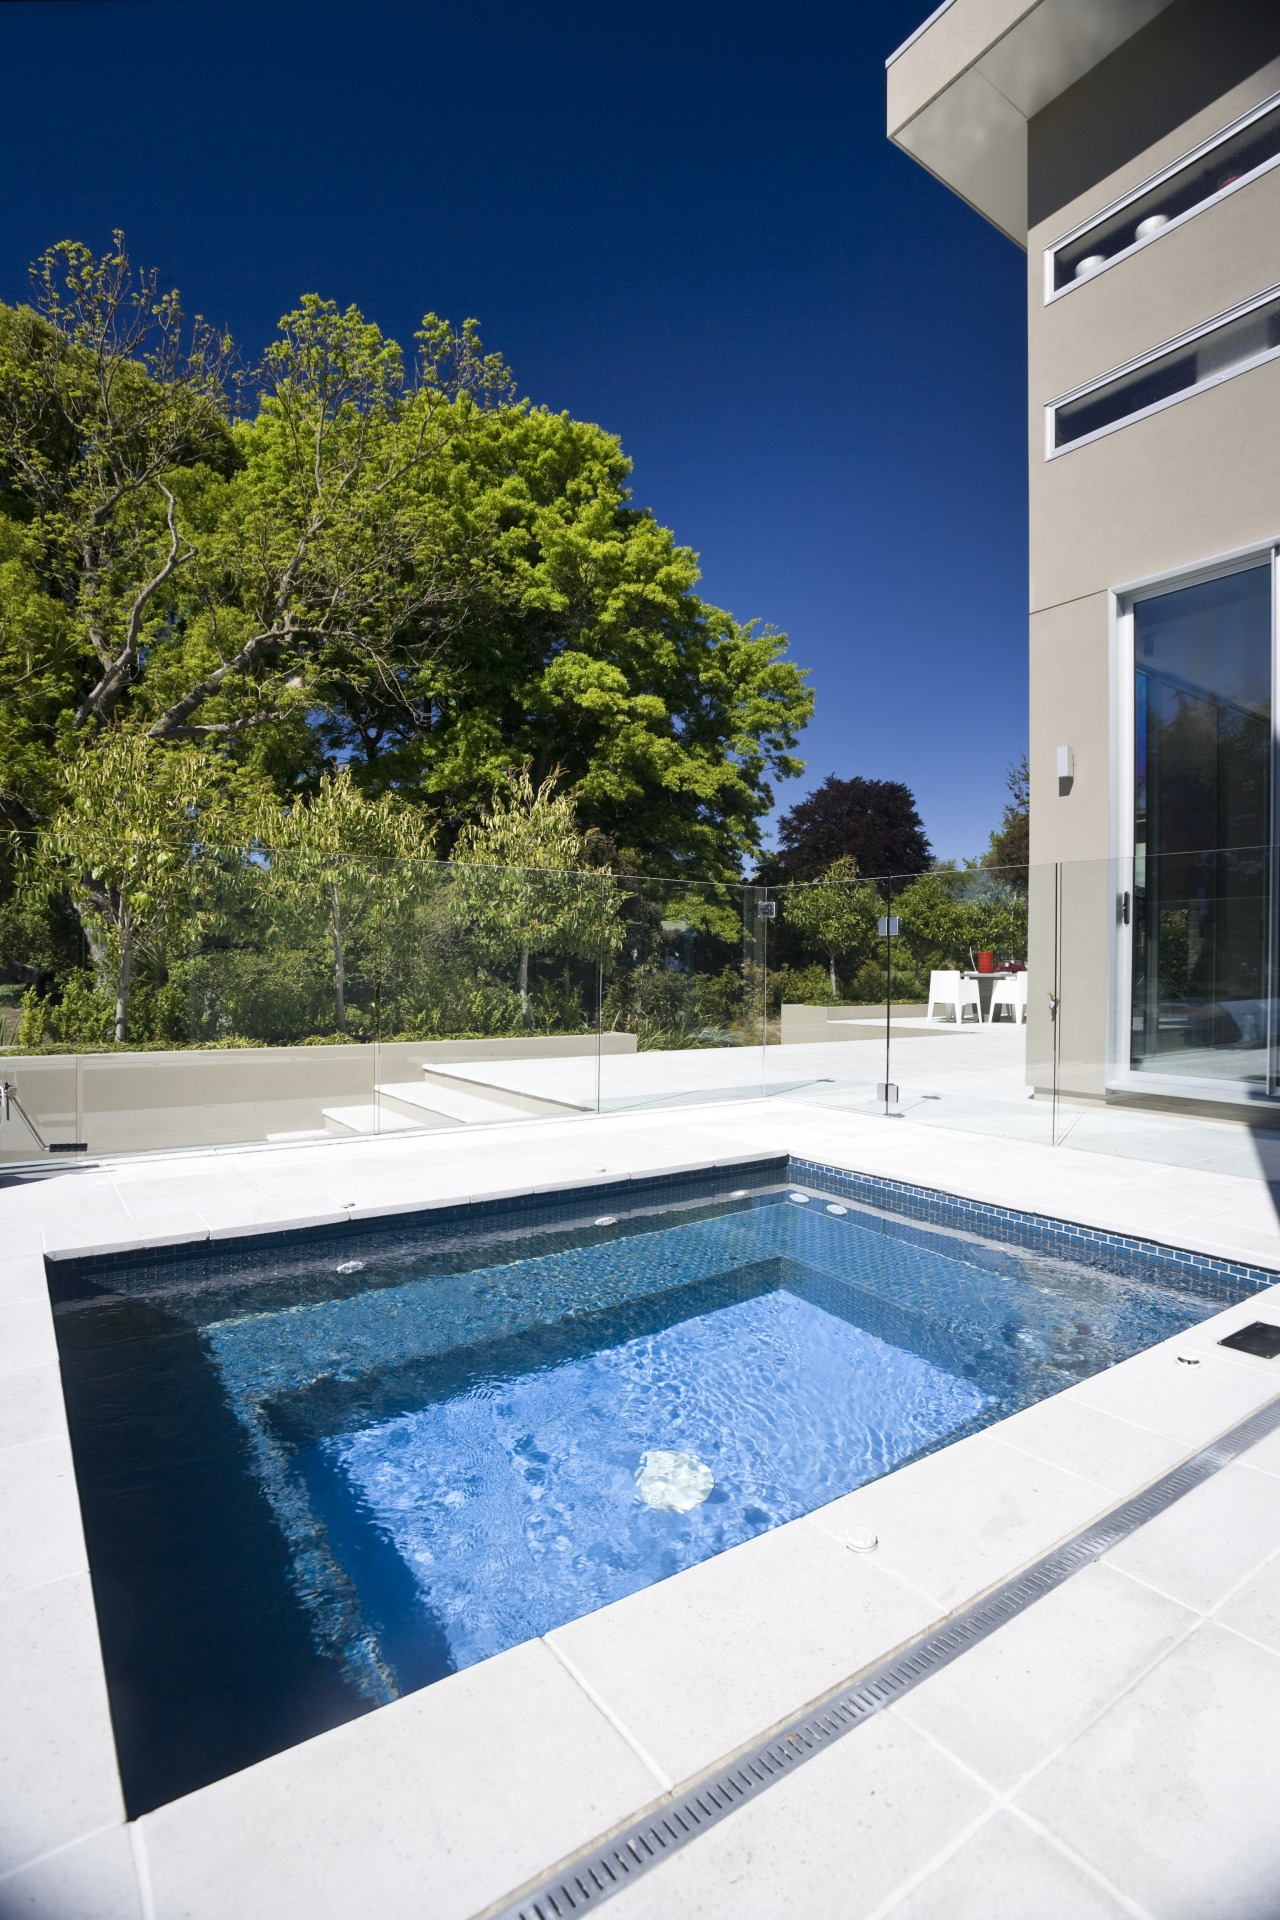 Exterior view of house and spa pool area architecture, estate, home, house, leisure, property, real estate, reflection, sky, swimming pool, vacation, villa, water, white, blue